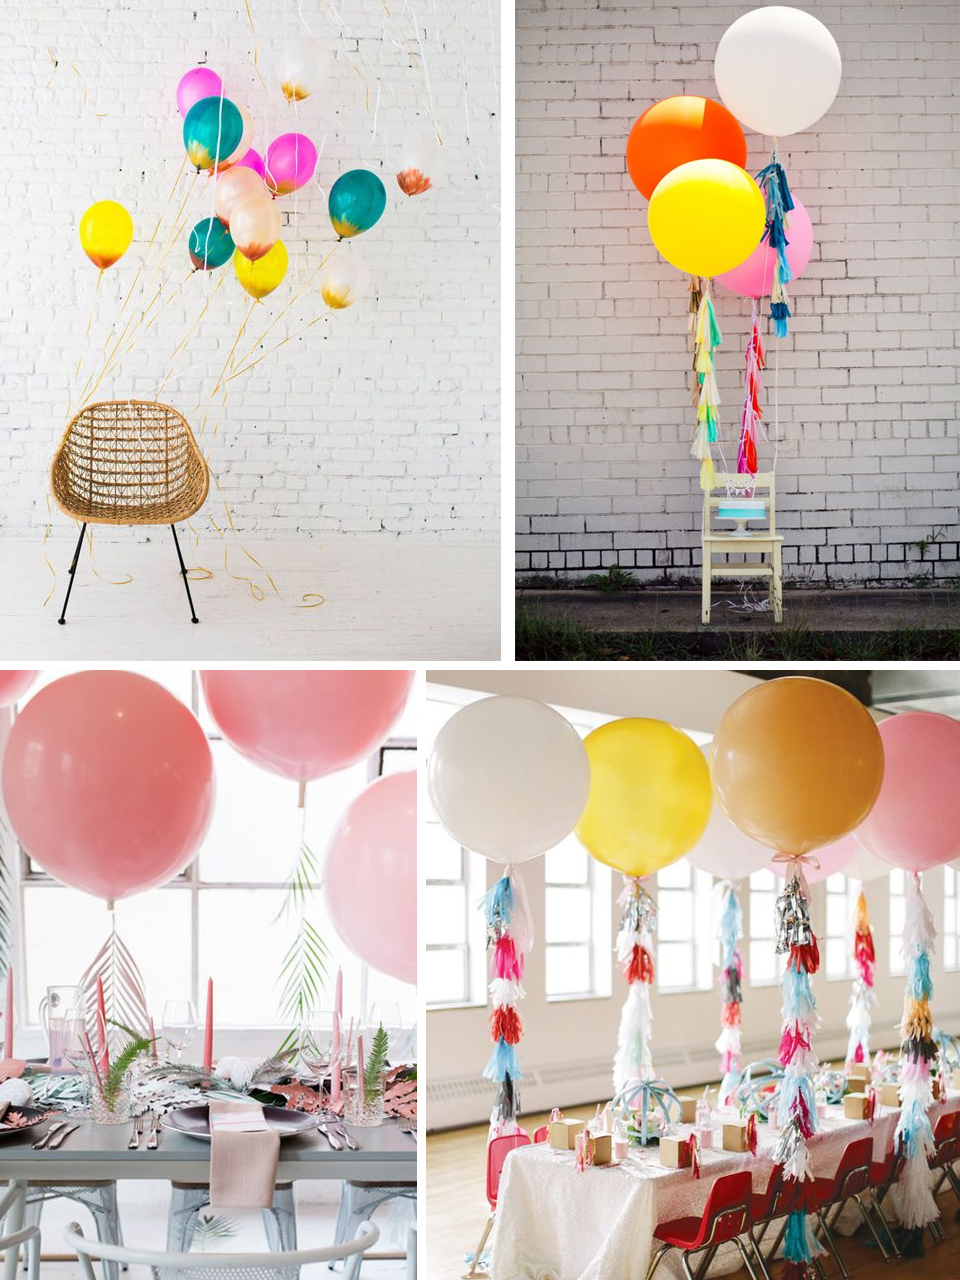 Descubre c mo decorar con globos con estas fant sticas ideas - Como decorar mesas para fiestas ...